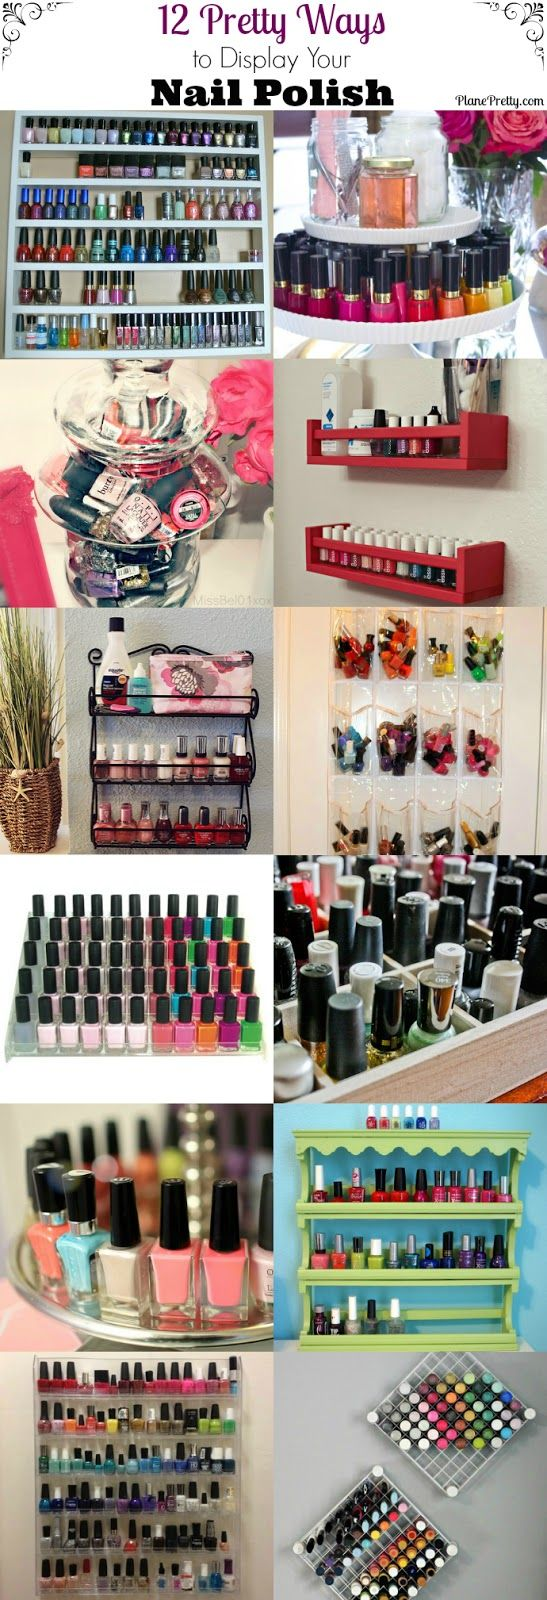 Best 100+ Essie Nail Polish Colors | Organizations, Display and ...